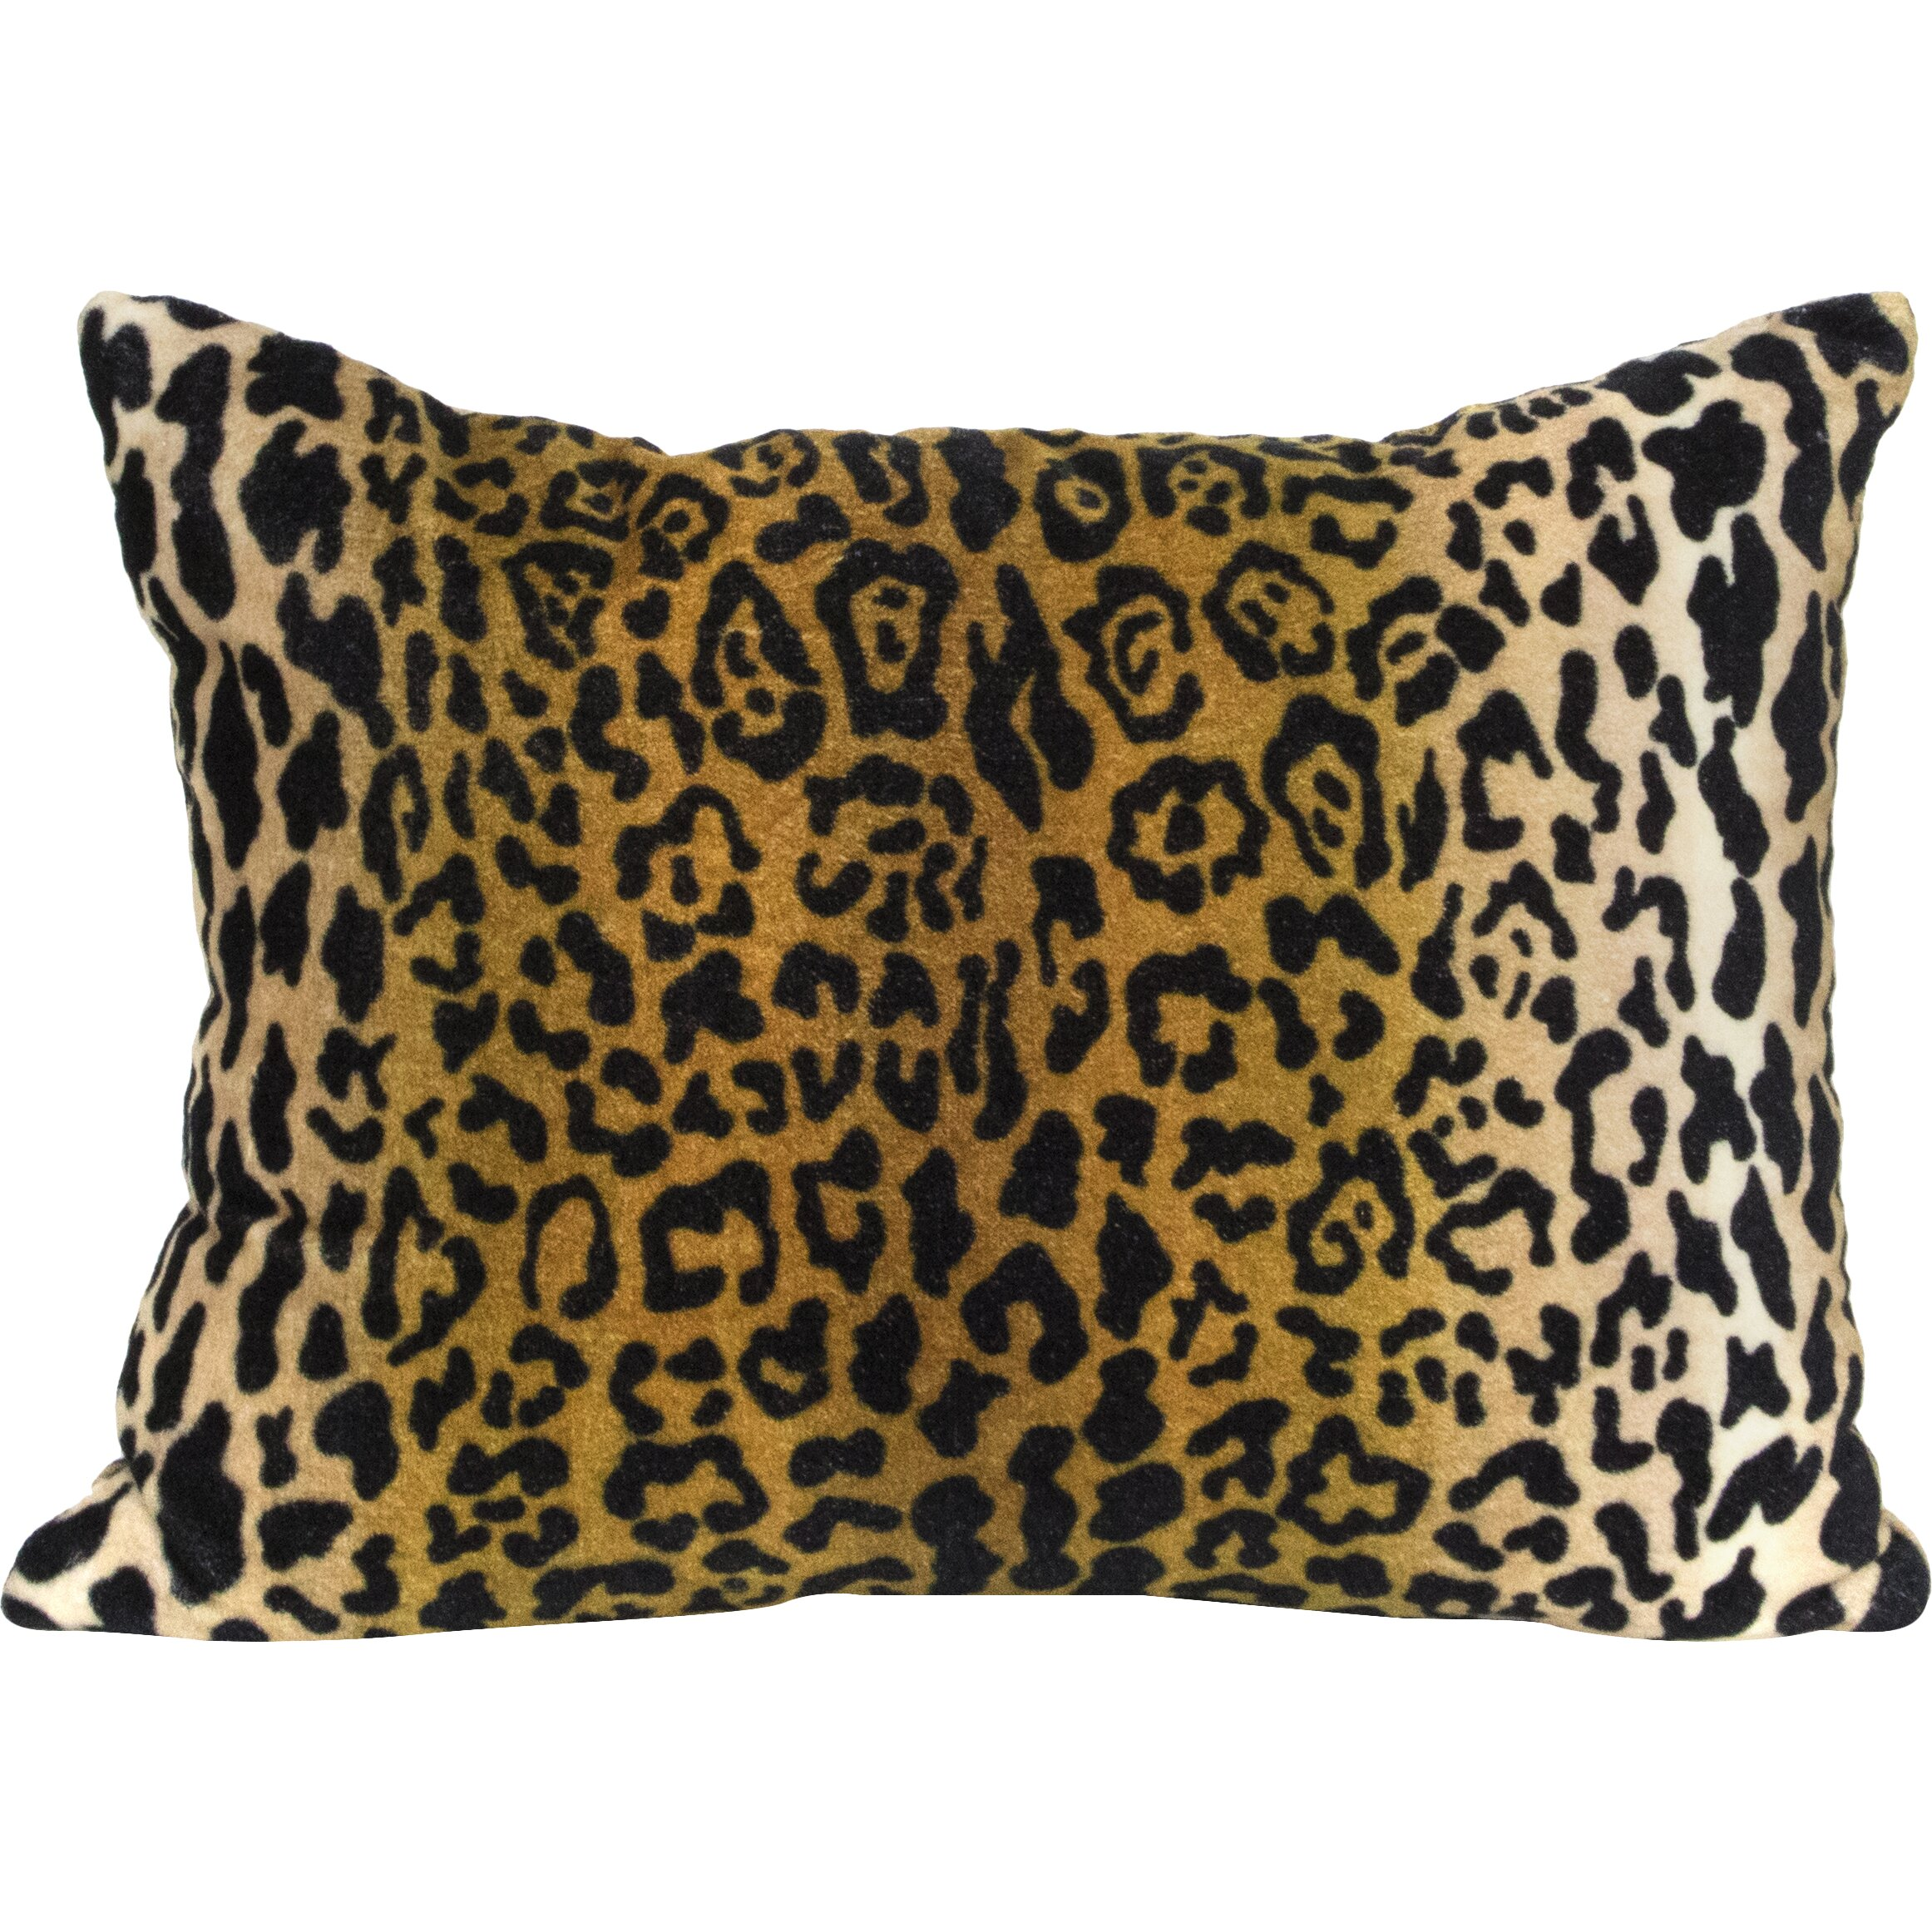 Elements By Erin Gates Leopard Velvet Lumbar Pillow